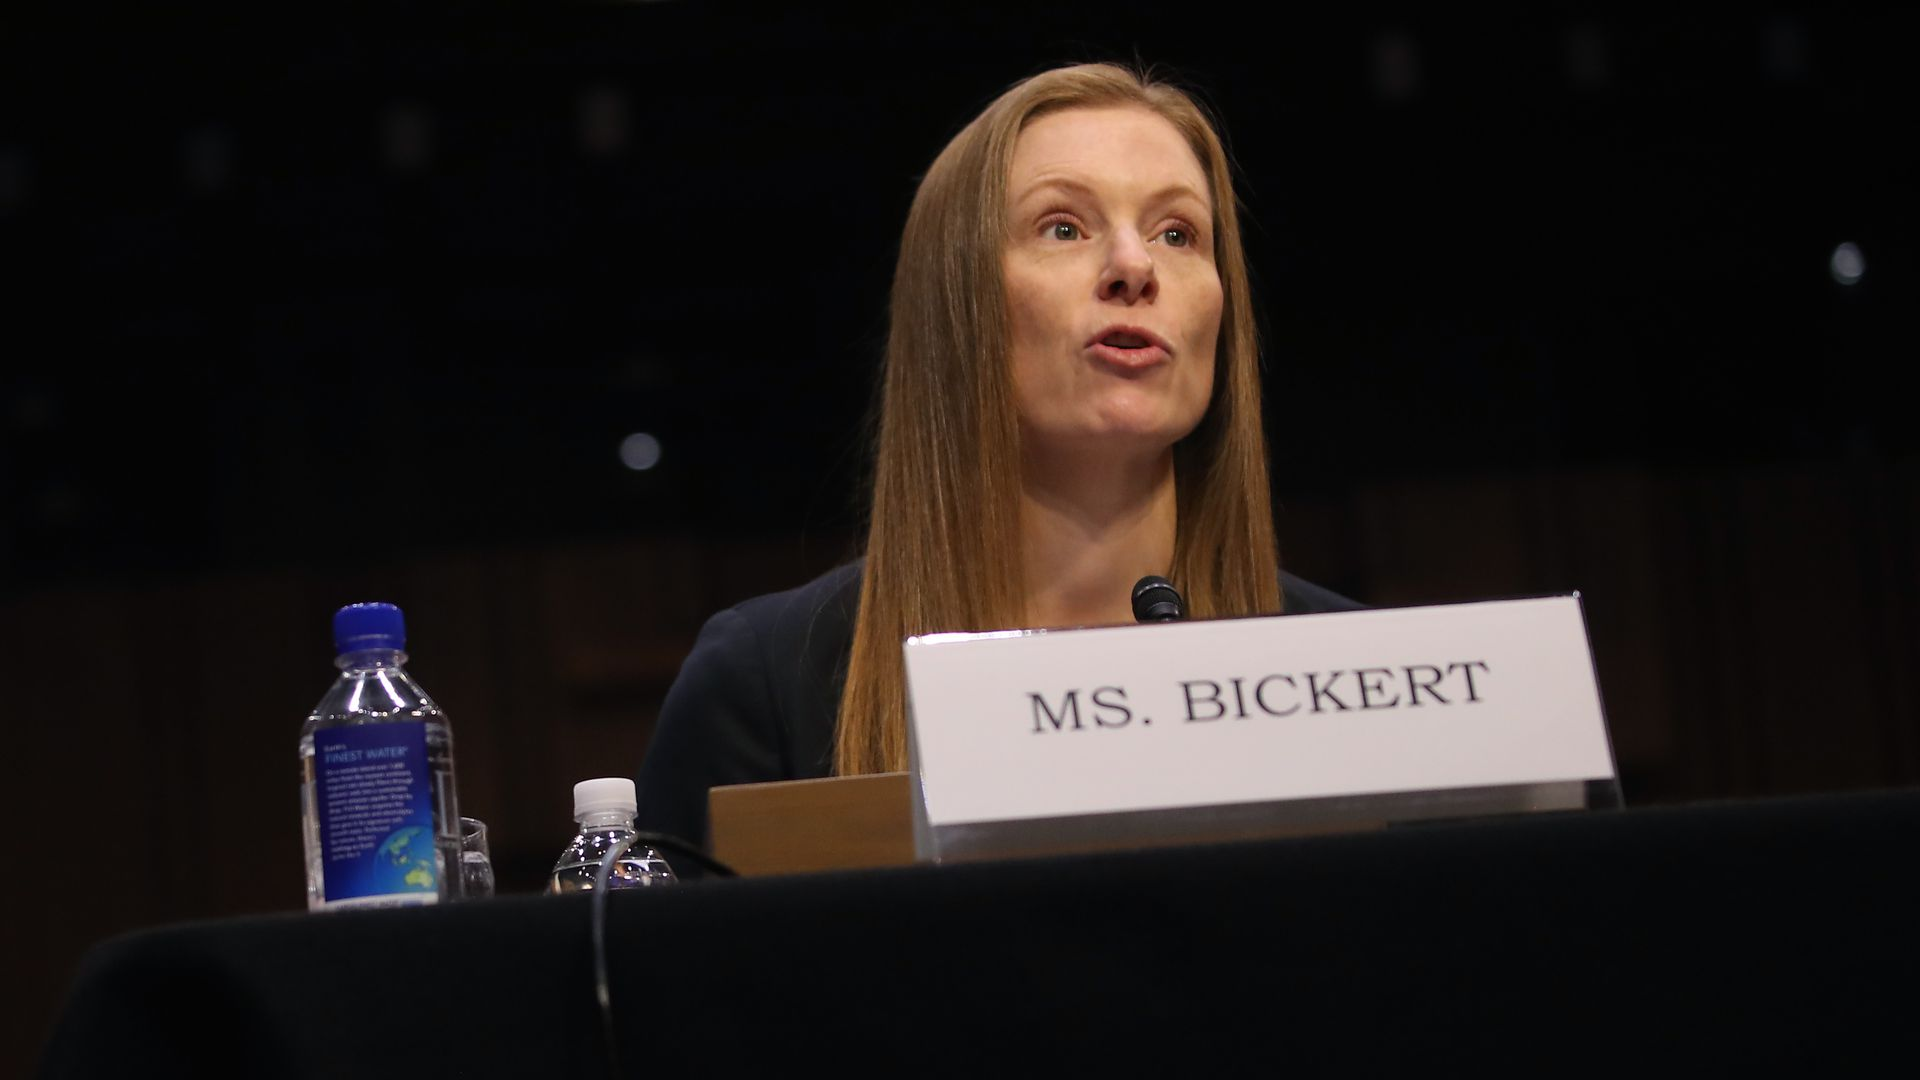 A photo of Facebook's Monika Bickert testifying at a table with a name plate in front of her.